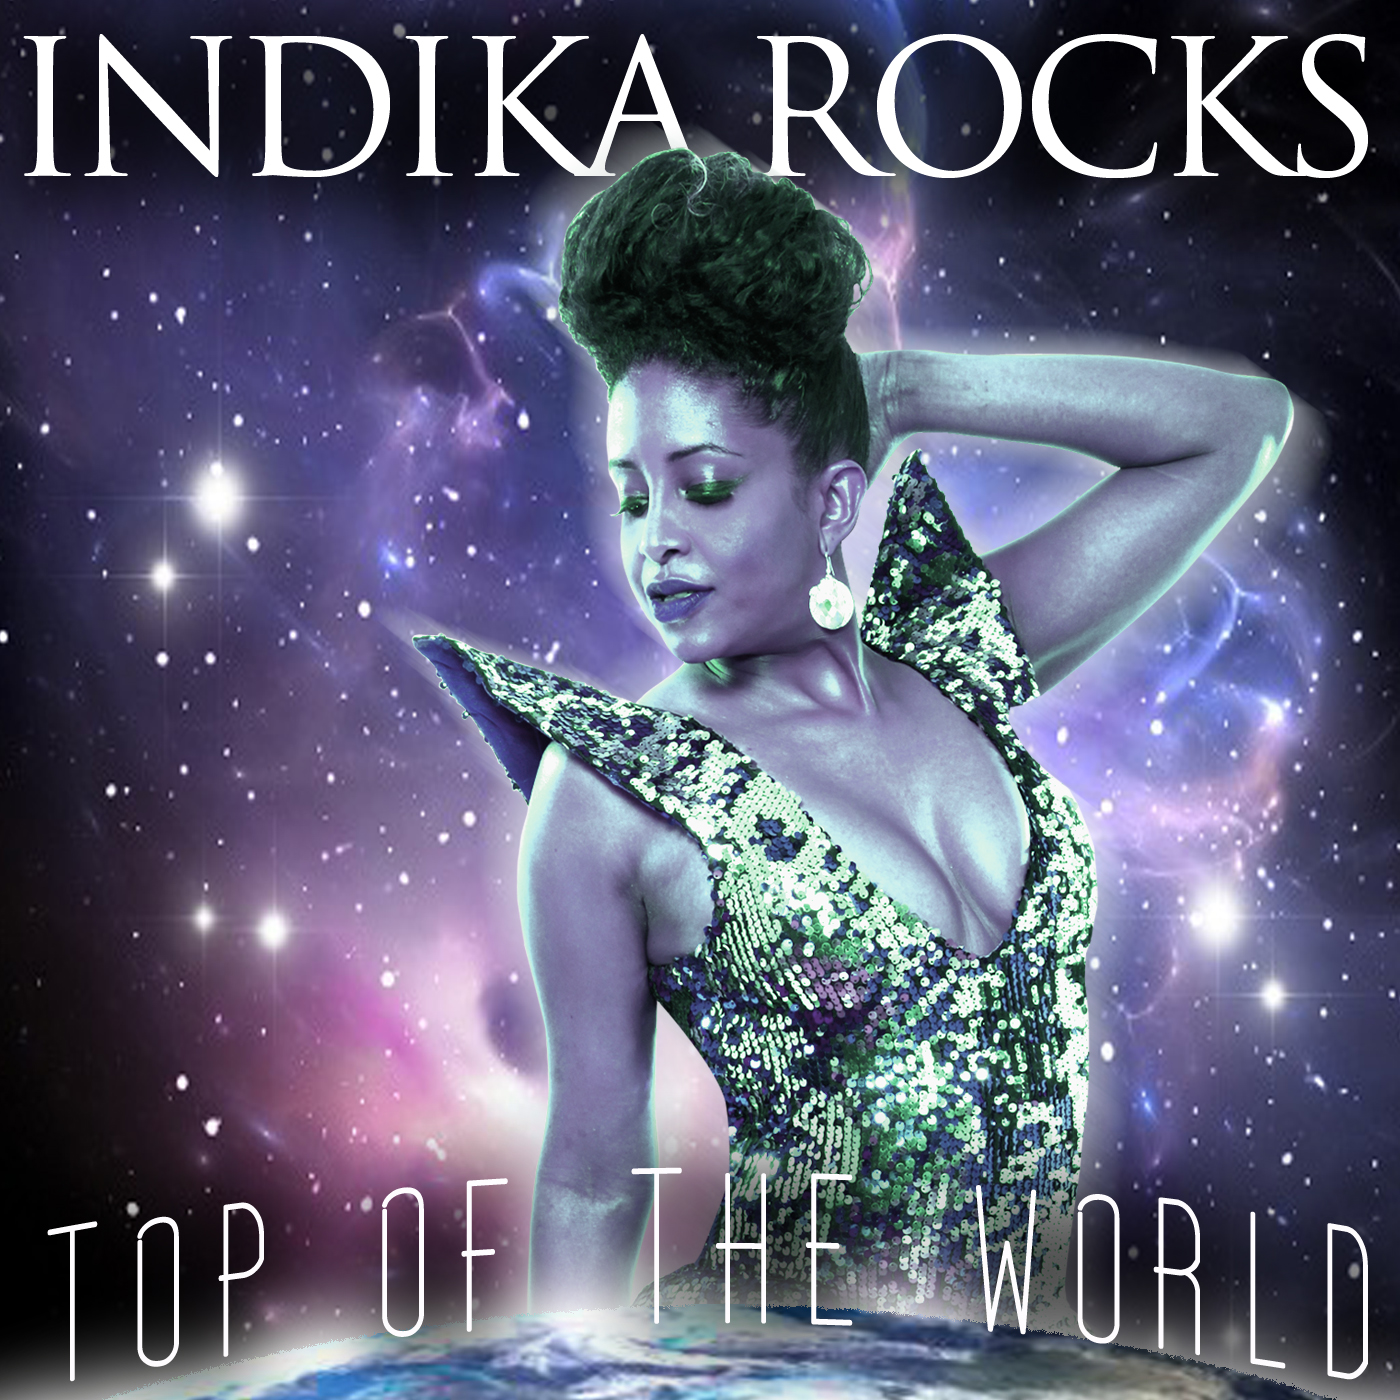 Top Of The World with 14 songs